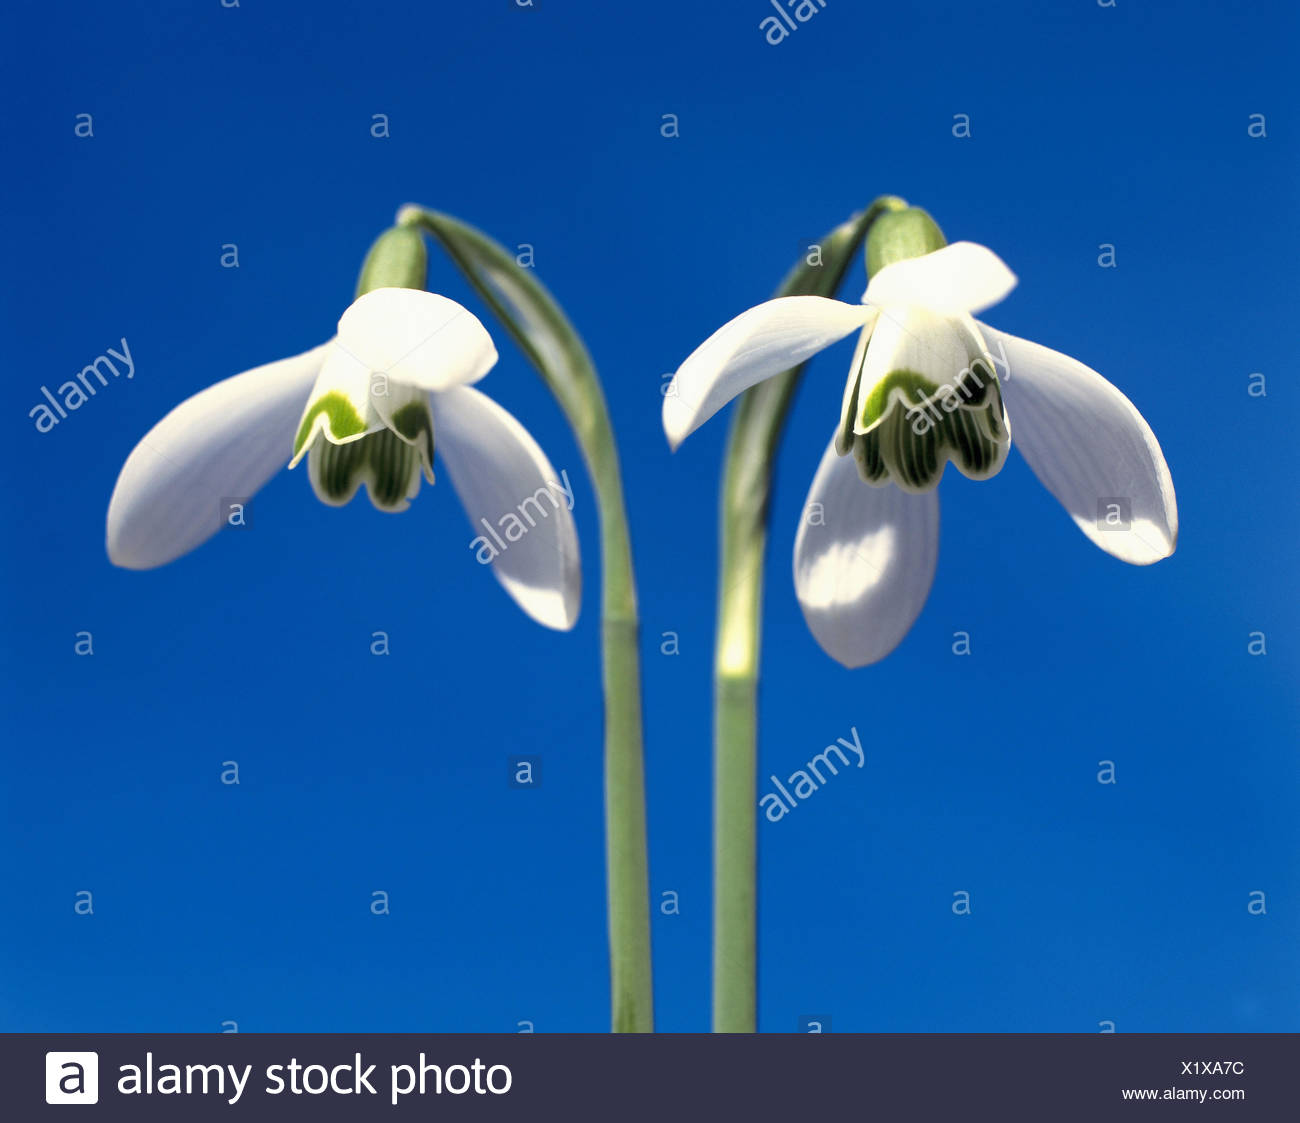 Snow Bells Flowers Stock Photos & Snow Bells Flowers Stock Images ...